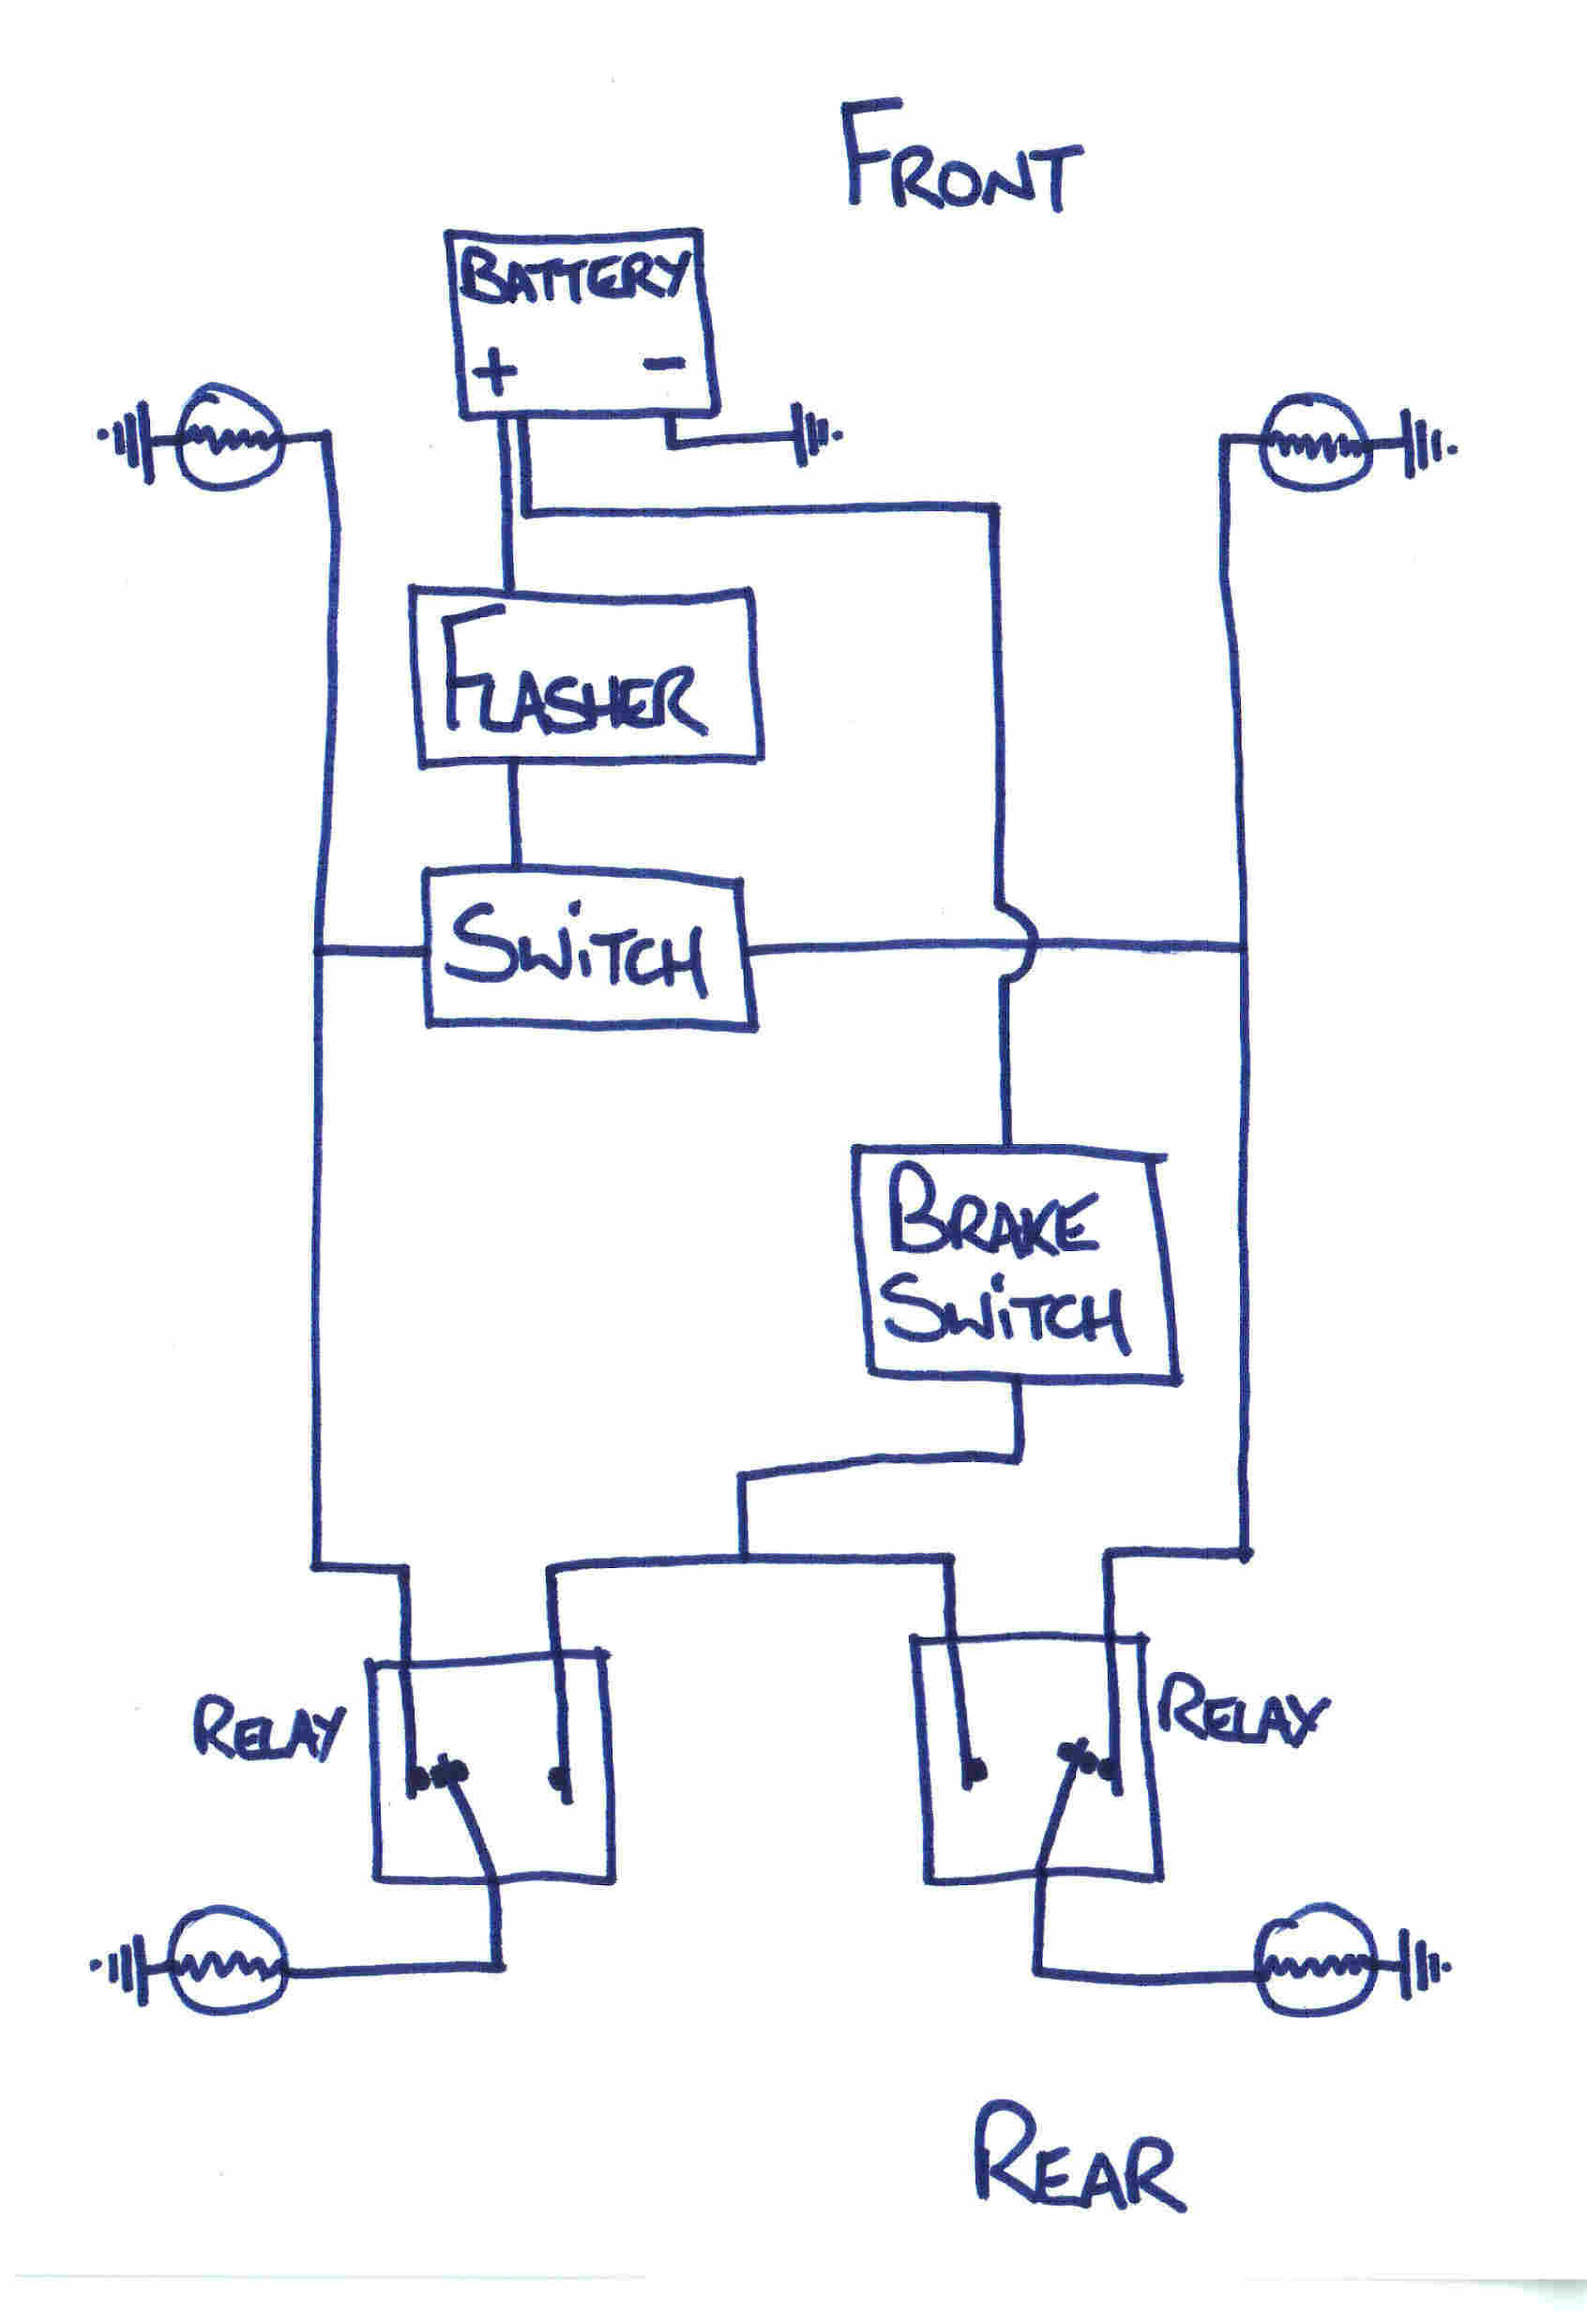 garys_flashers modern flasher circuits lucas indicator switch wiring diagram at pacquiaovsvargaslive.co